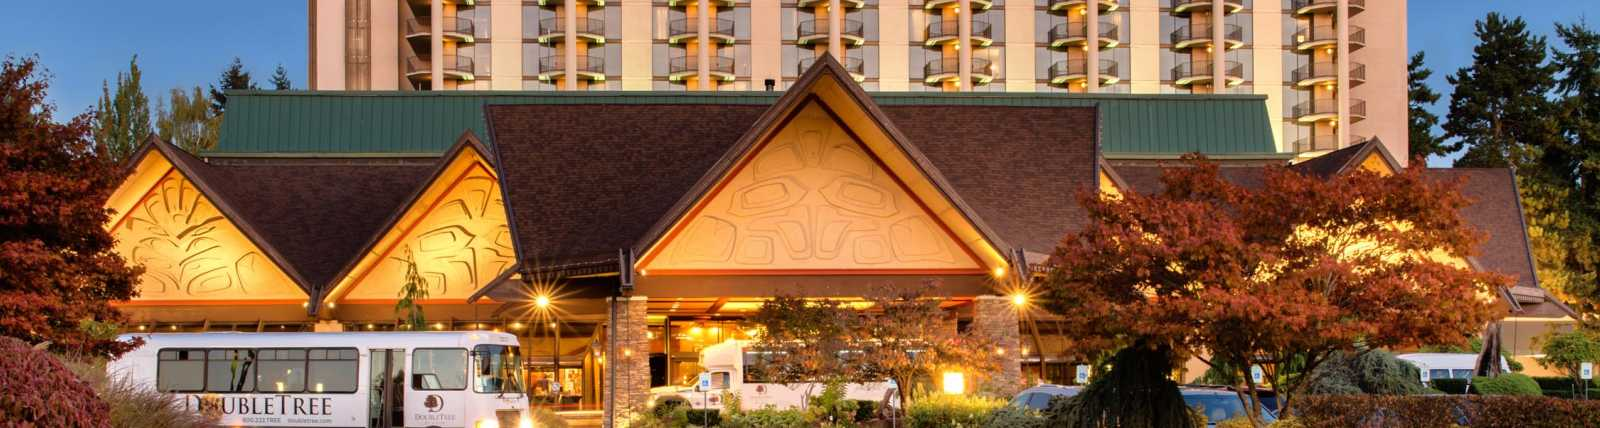 DoubleTree_by_Hilton_Hotel_Seattle_Airport-9.jpg